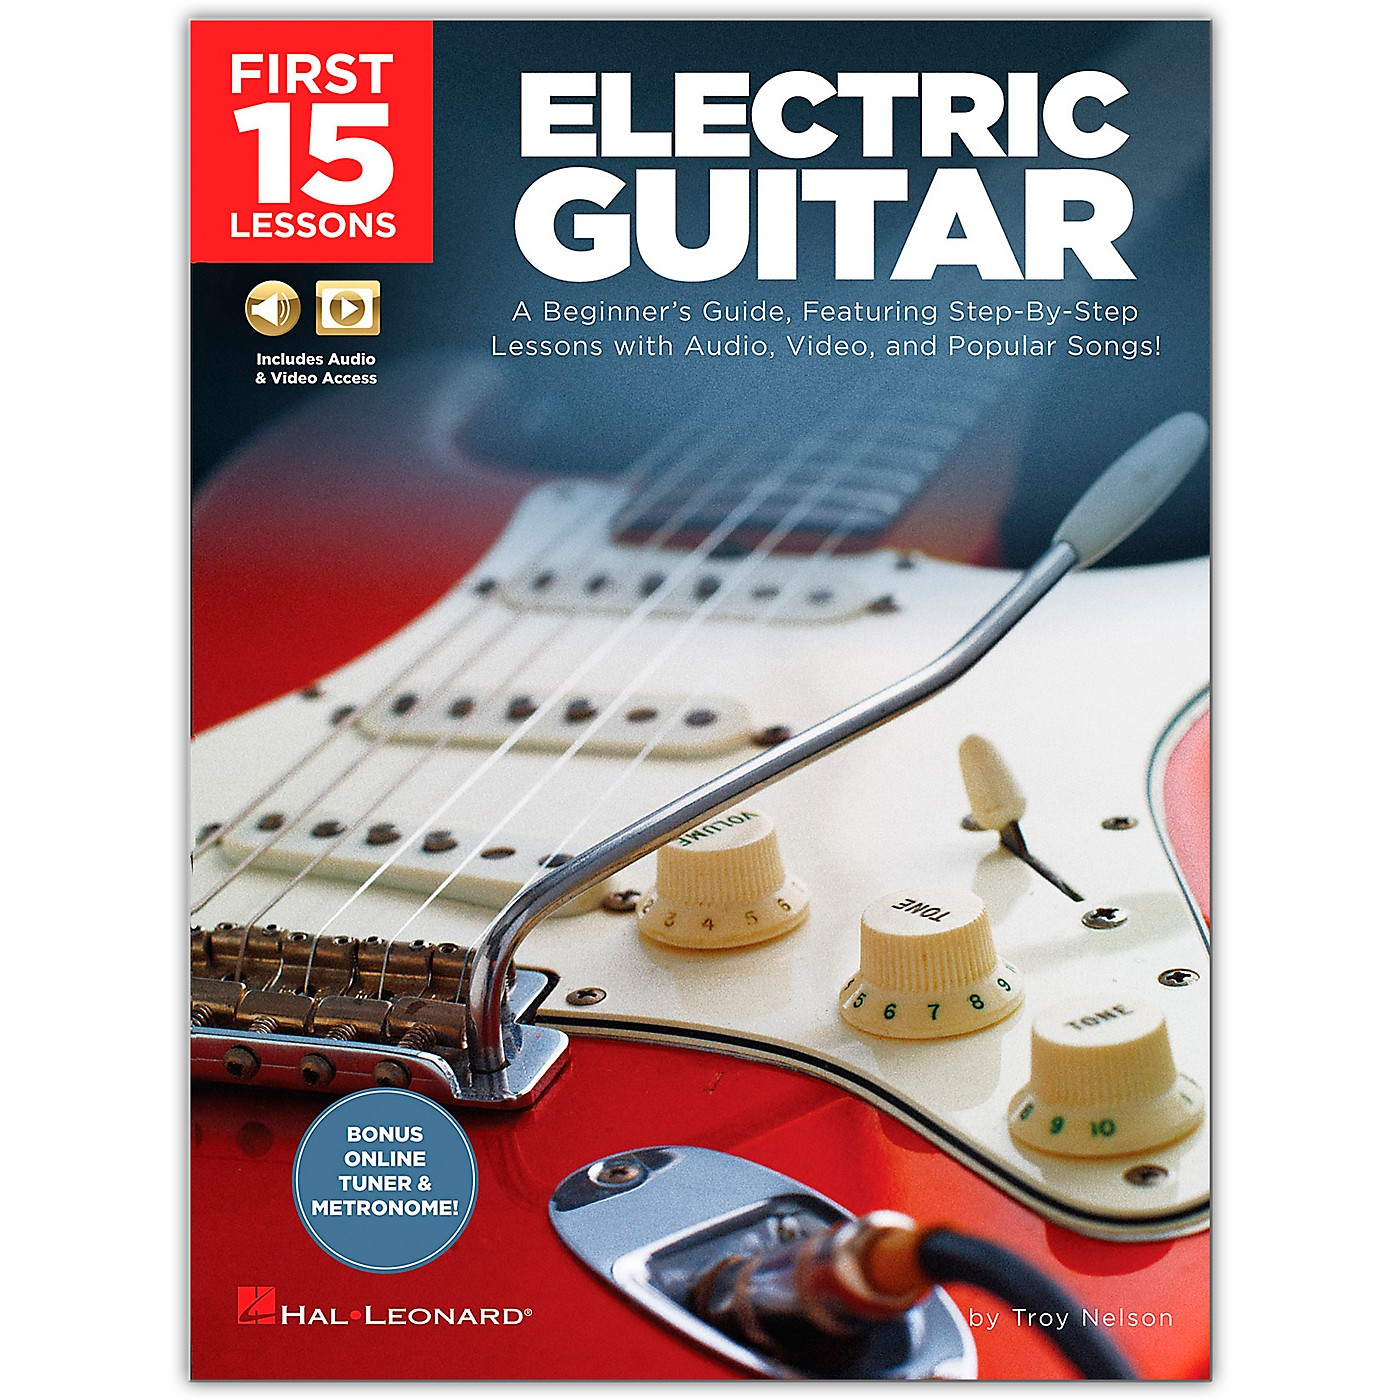 Hal Leonard First 15 Lessons Electric Guitar  A Beginner's Guide, Featuring Step-By-Step Lessons with Audio, Video, and Popular Songs! Book/Media Online thumbnail